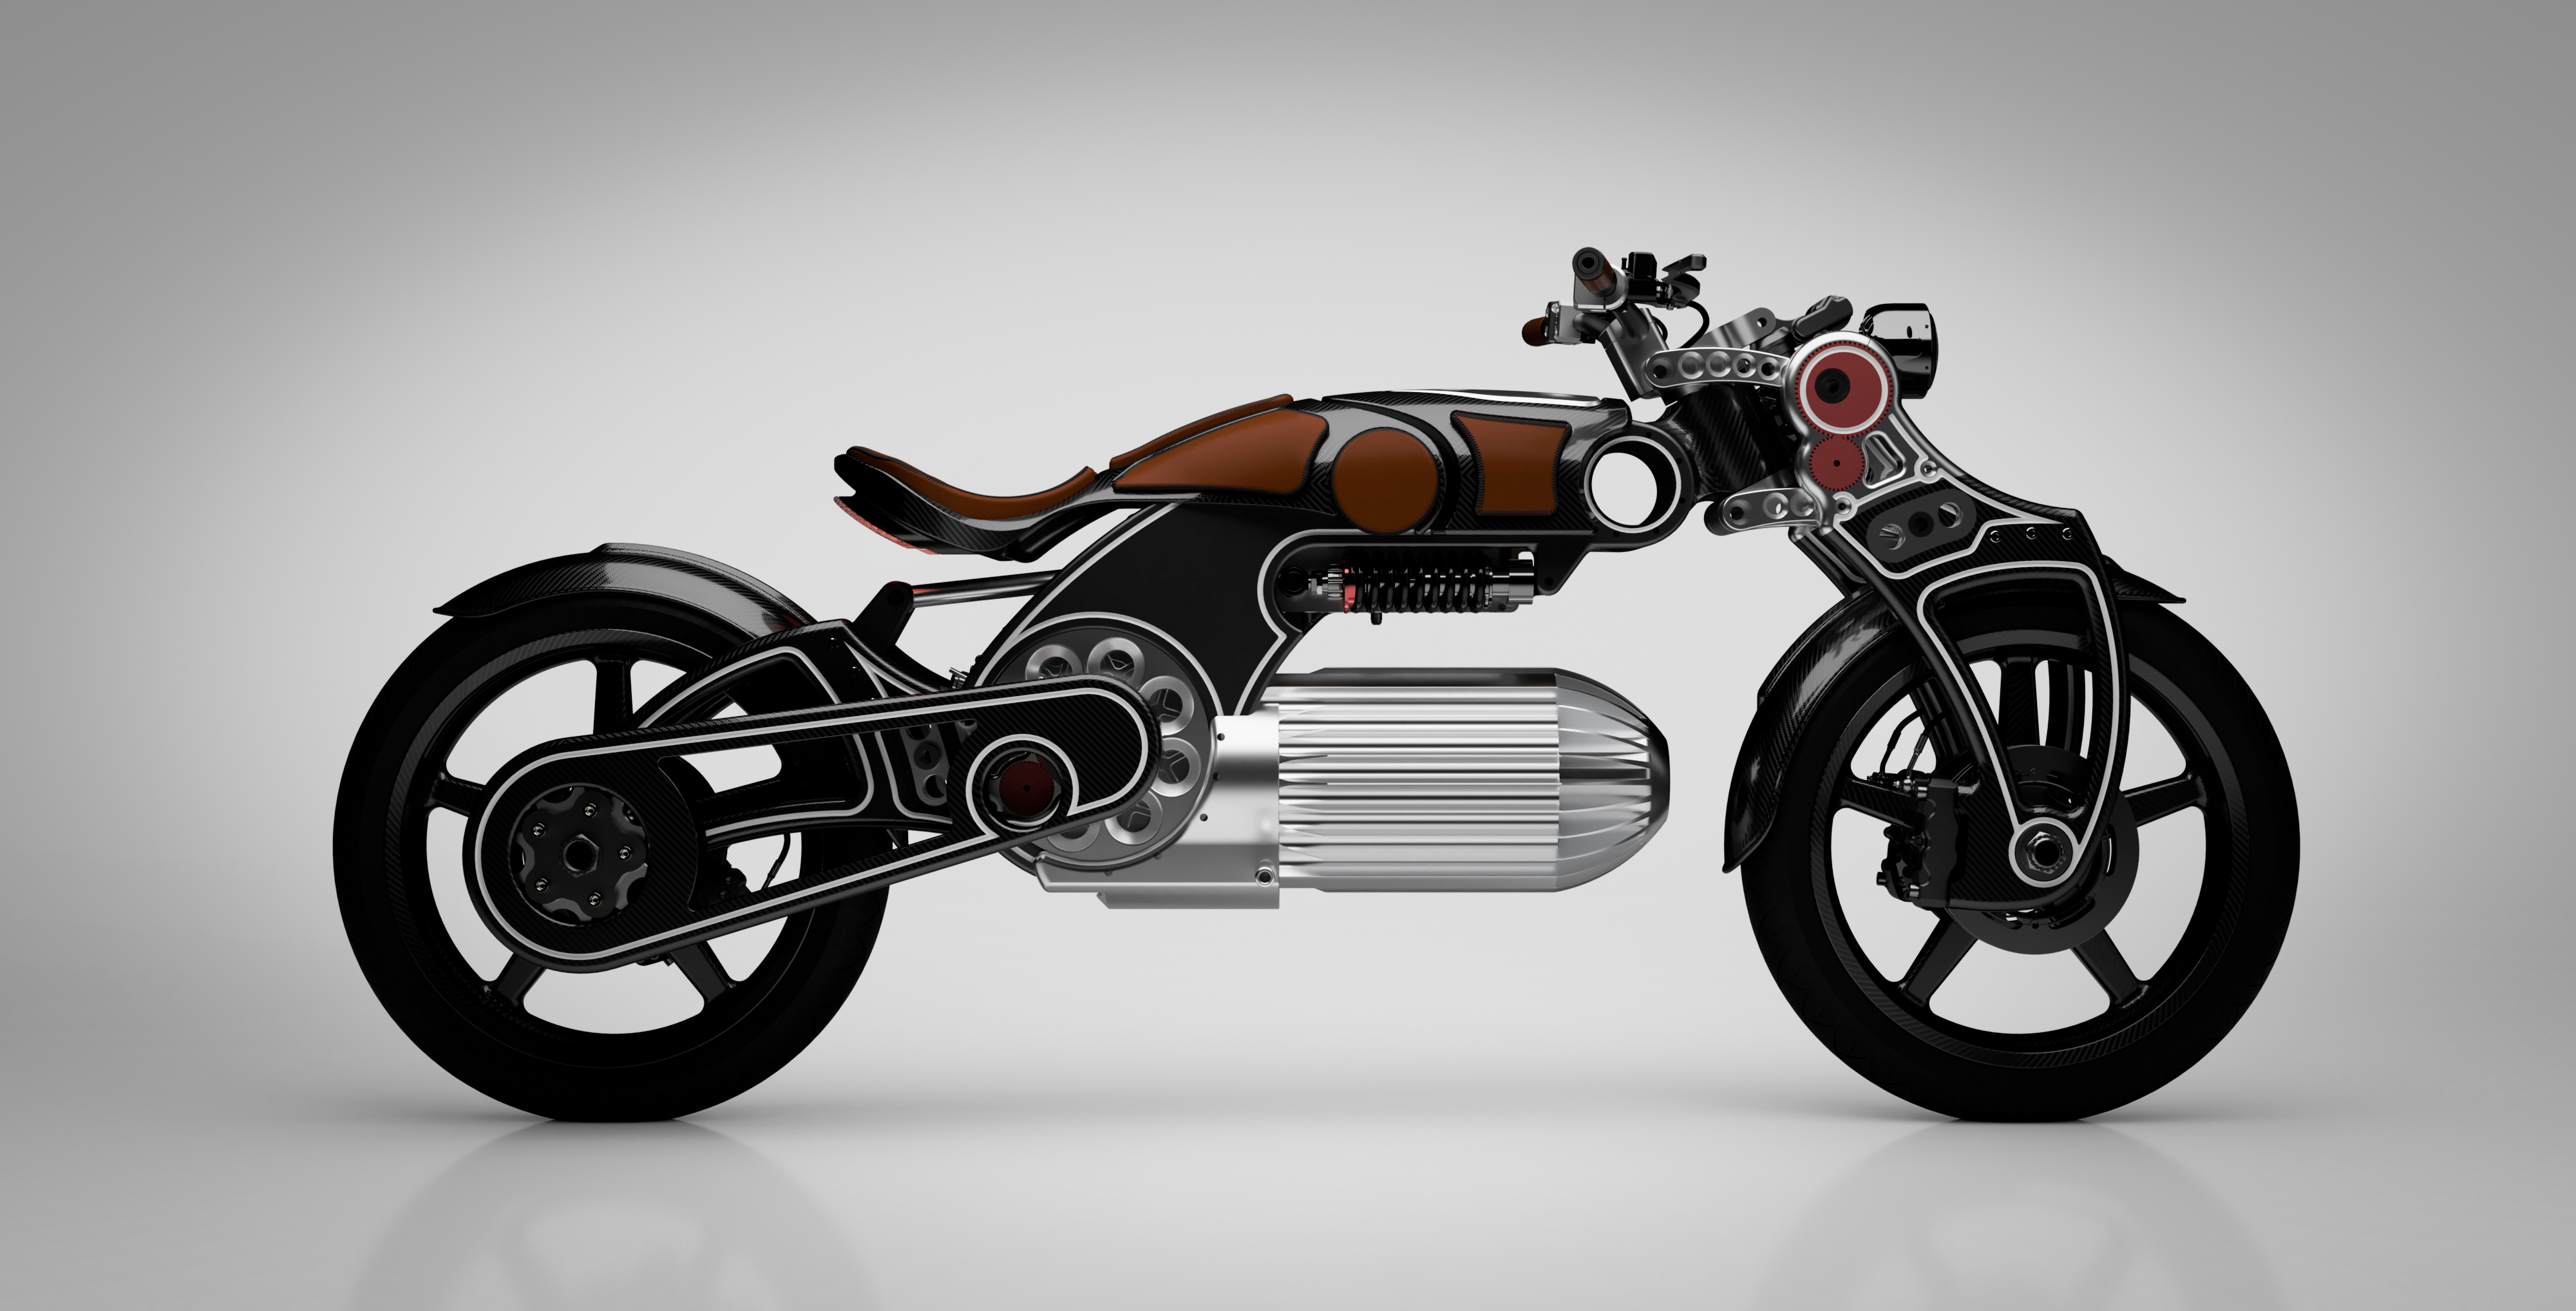 Hades Curtiss Motorcycles